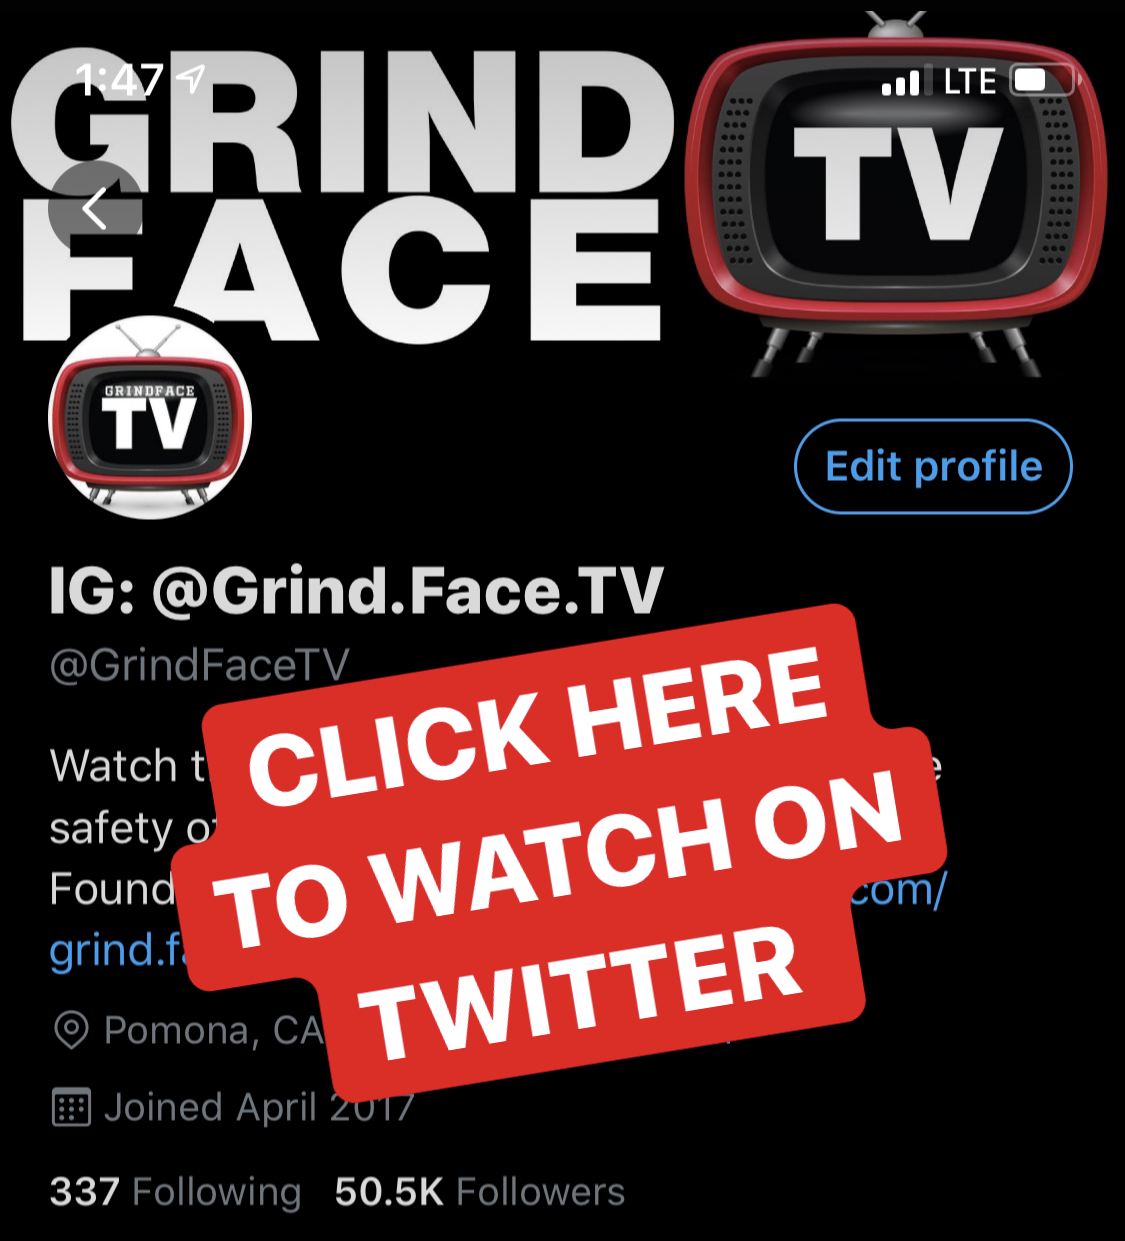 Watch On GrindFaceTV